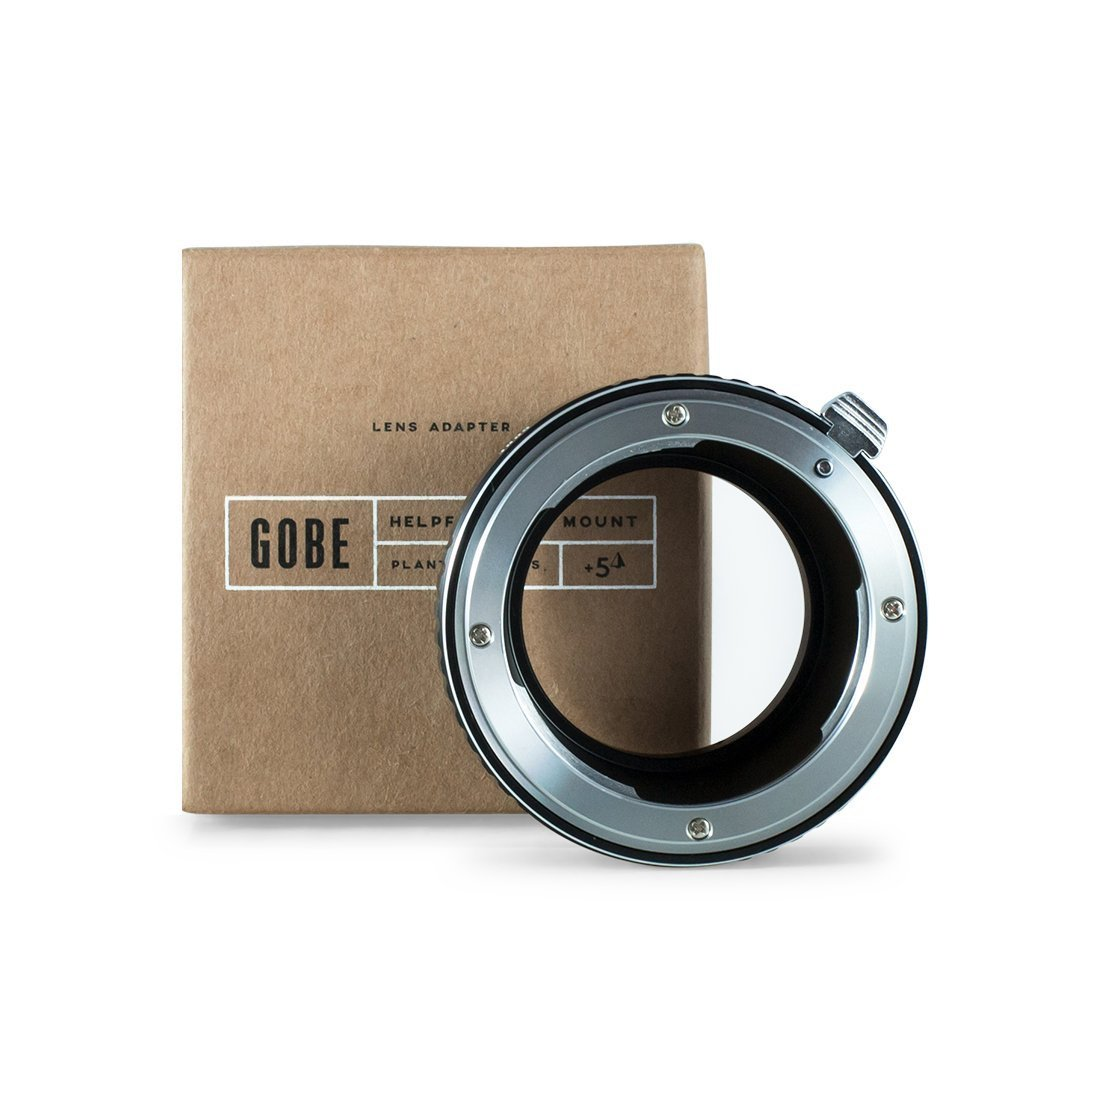 Gobe Lens Adapter: Compatible with Canon EOS (EF/EF-S) Lens and Fujifilm X-mount Camera Body LAMF-EF-X